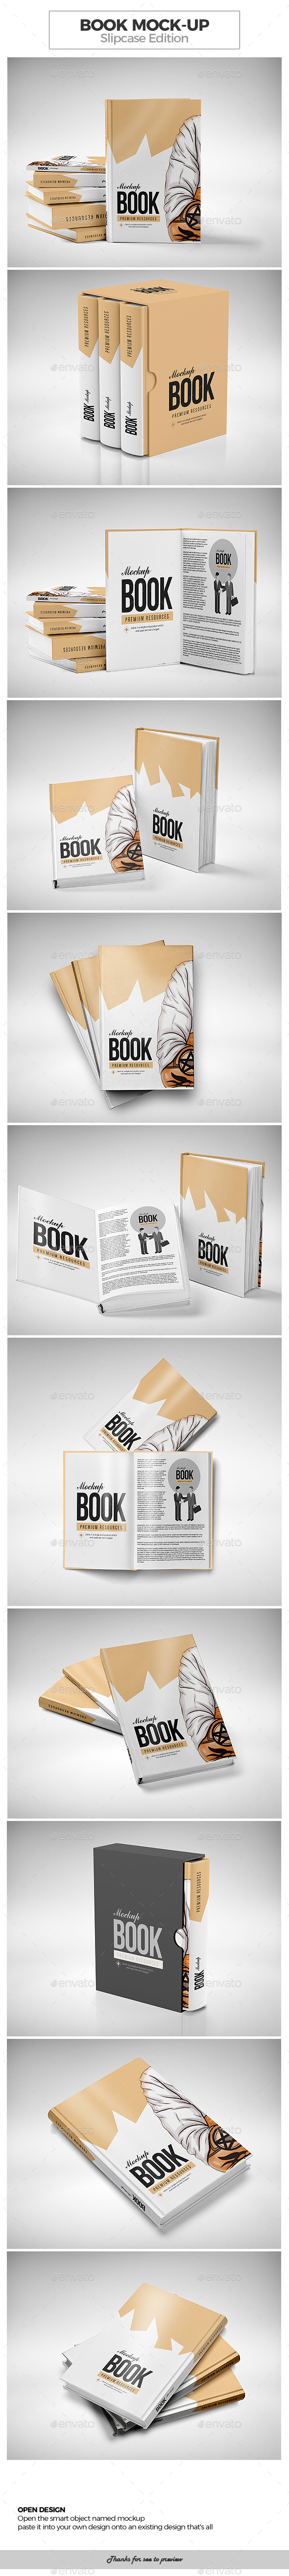 Book Mock-up / Slipcase Edition - Product Mock-Ups Graphics